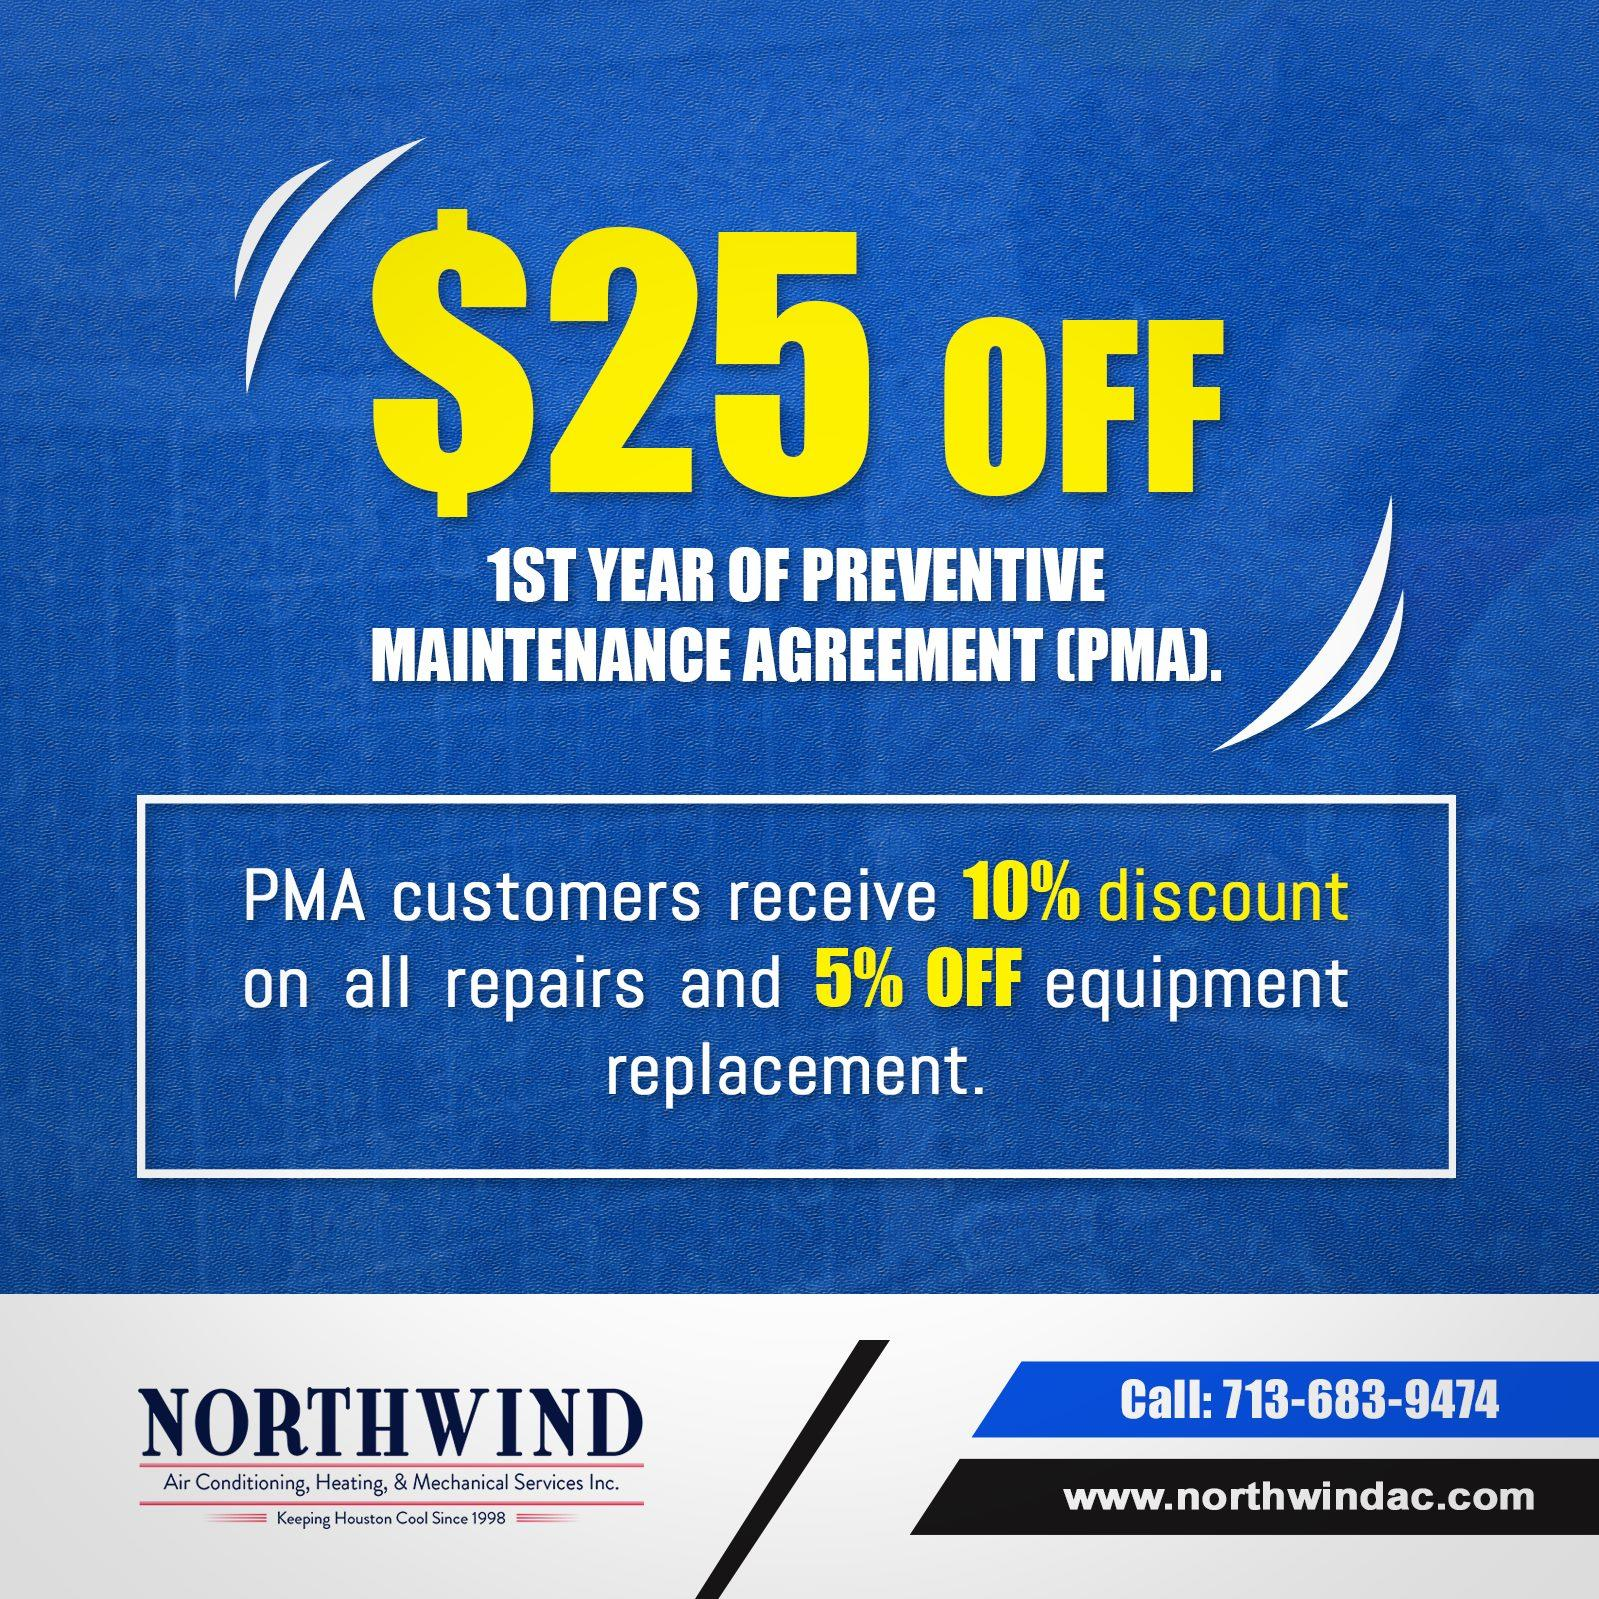 Northwind Air Conditioning, Heating & Mechanical Services image 19